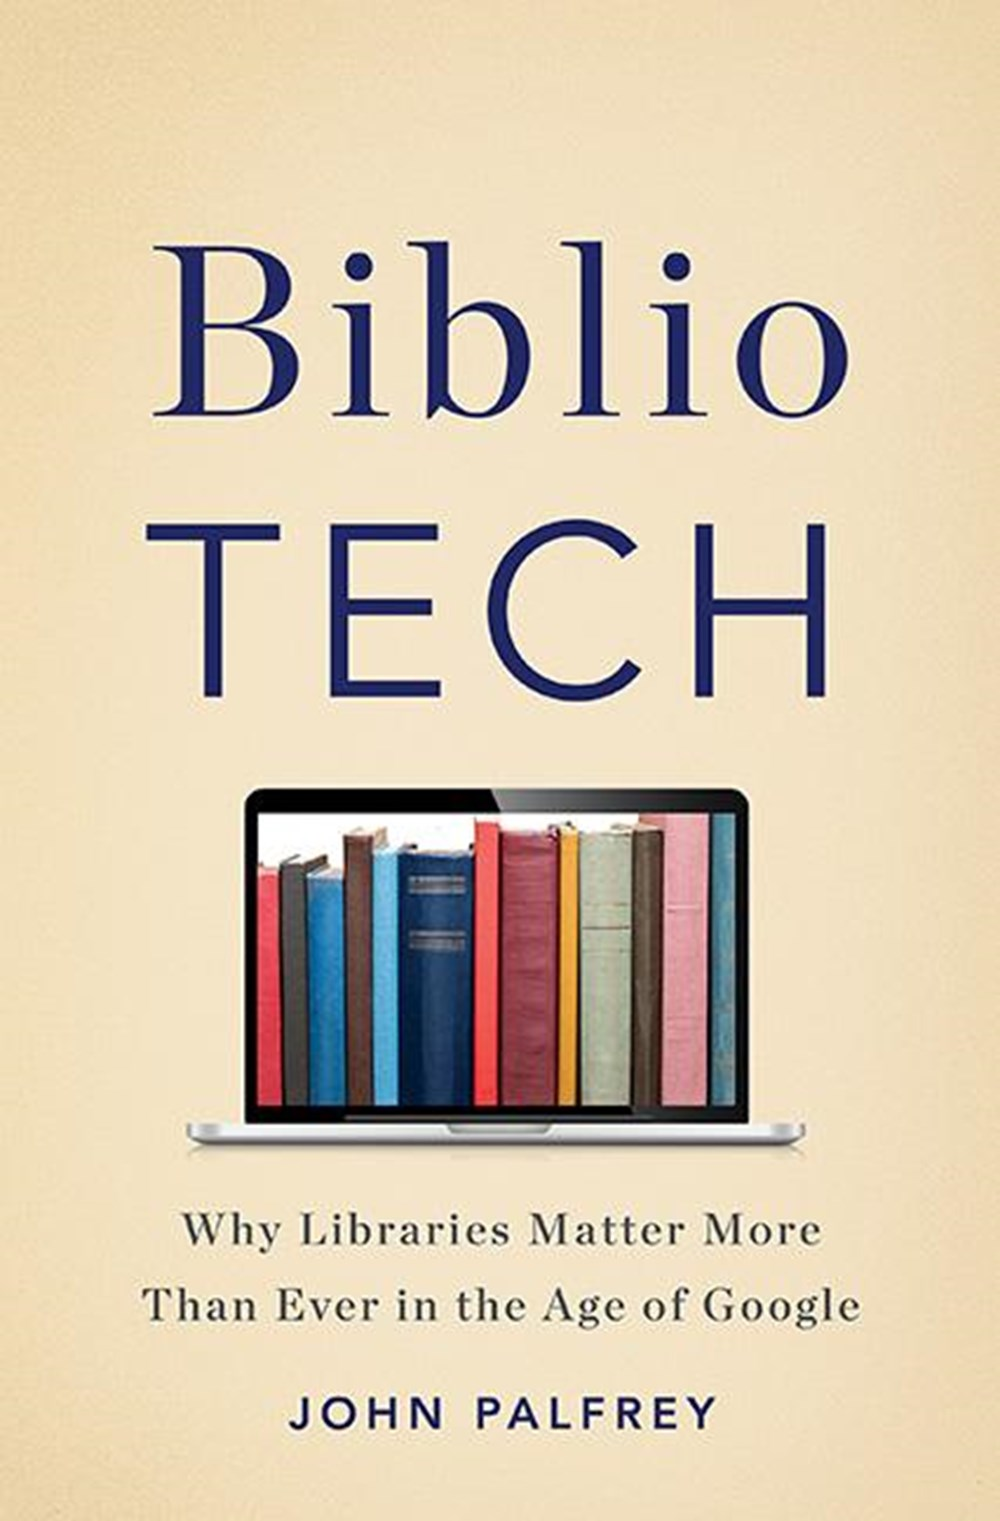 Bibliotech Why Libraries Matter More Than Ever in the Age of Google